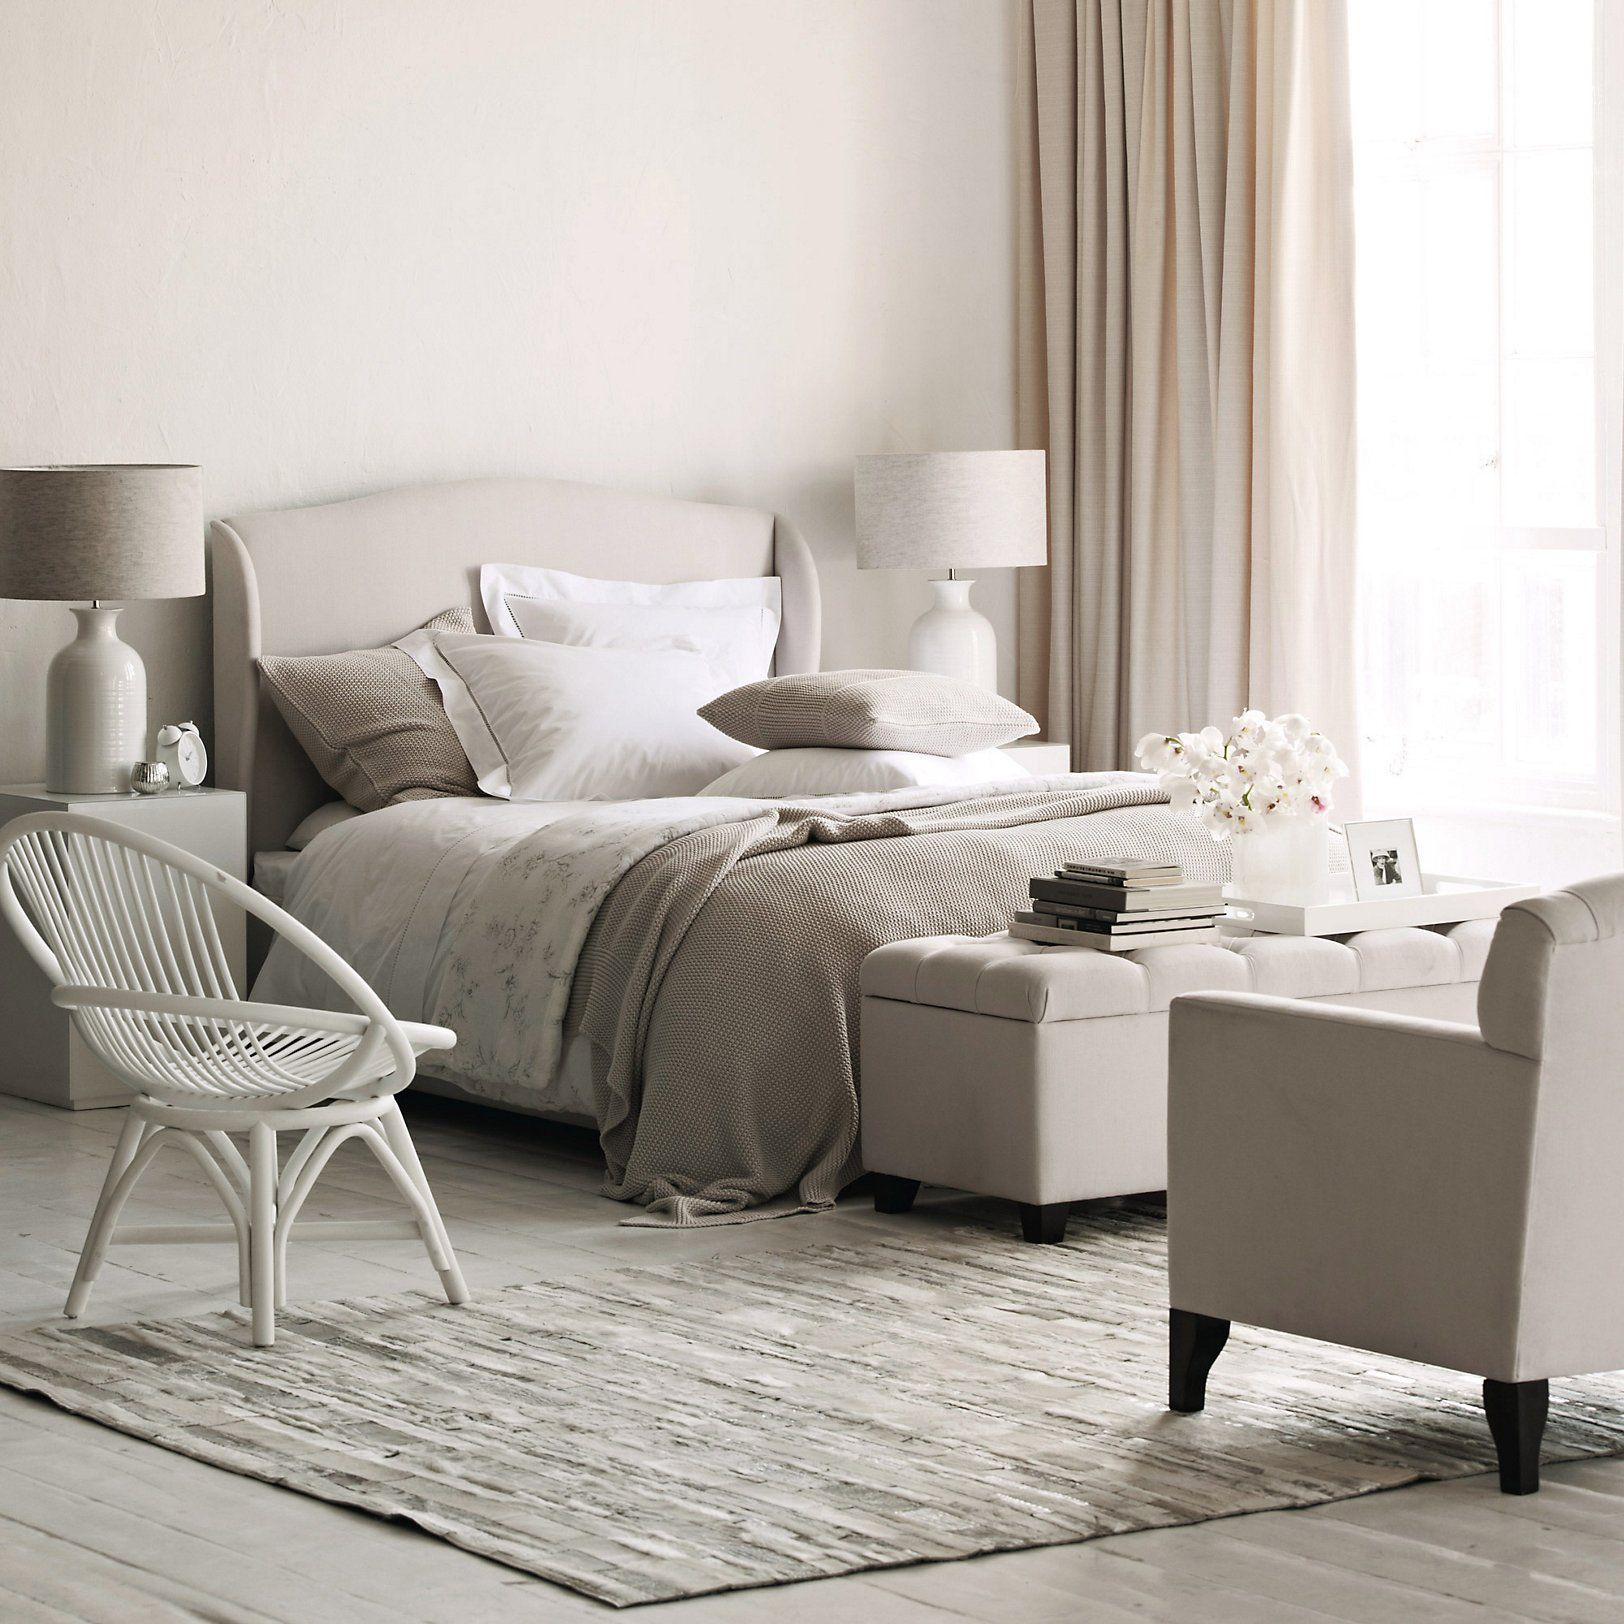 Best Newport Collection View All Bedding The White Company 400 x 300